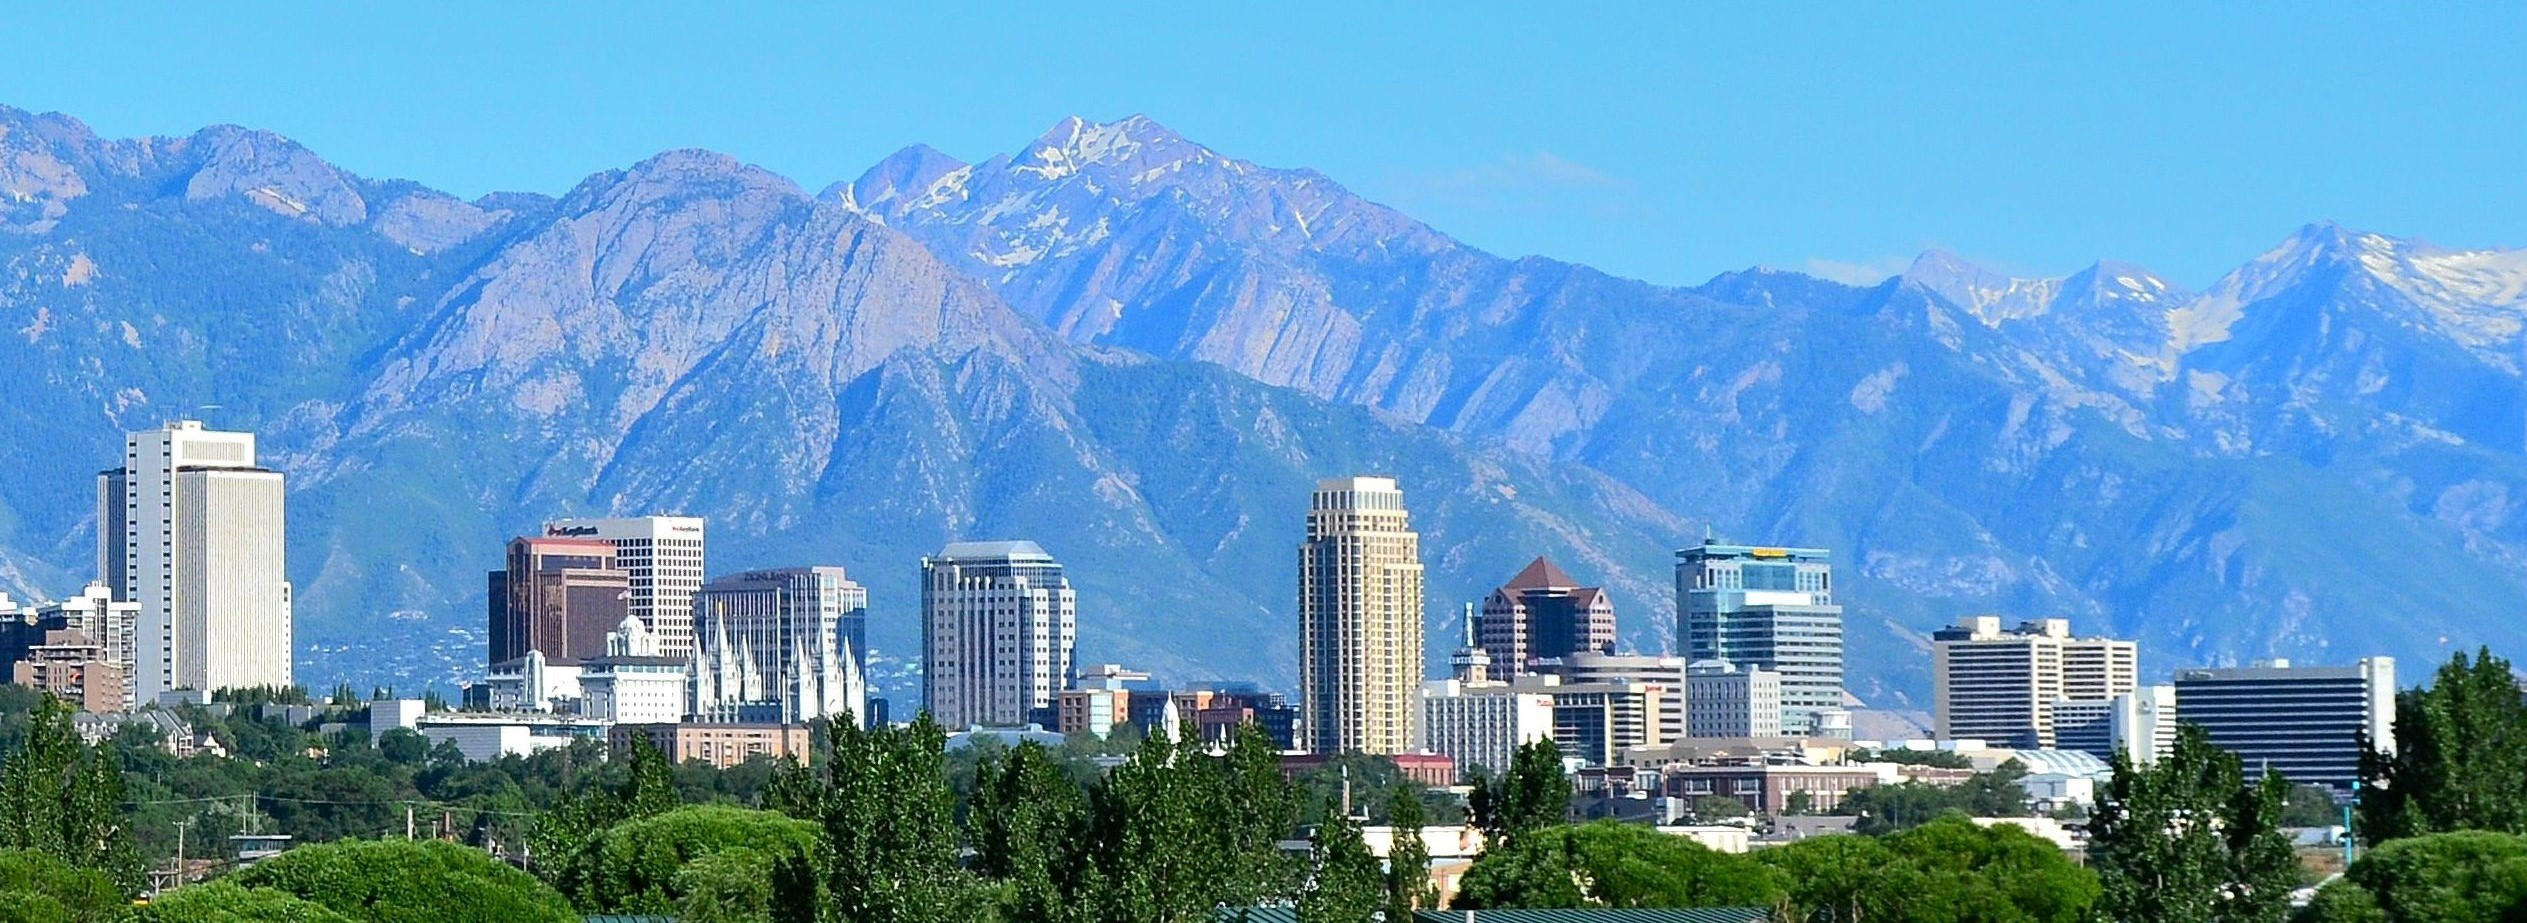 Our central address is: American Academic Press 201 Main St.   Salt Lake City   UT 84111 USA